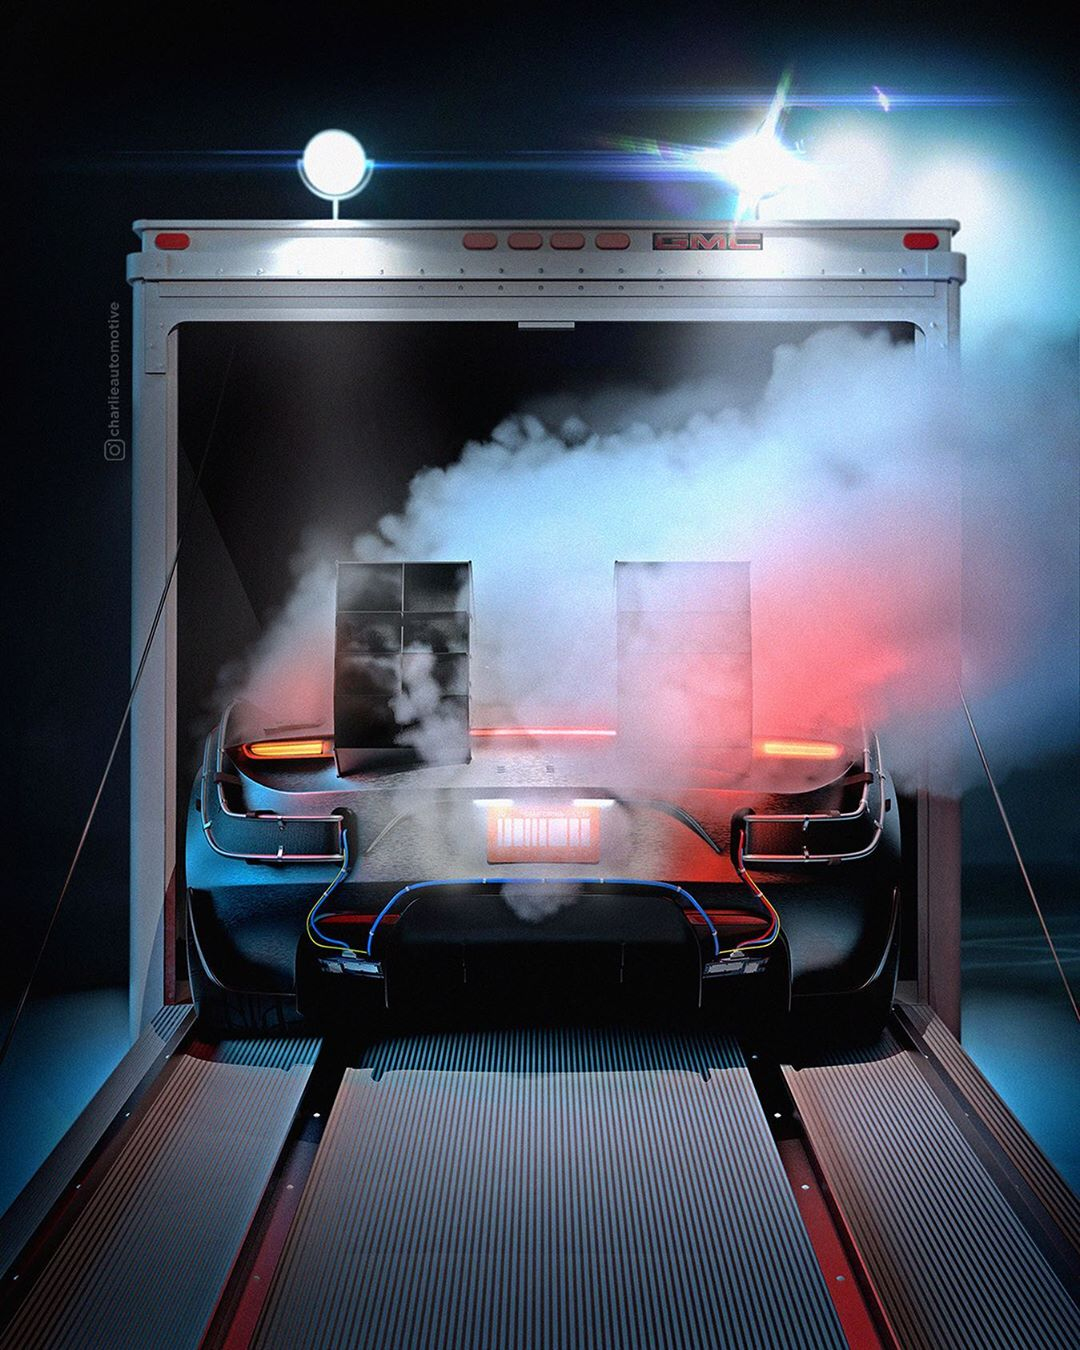 Tesla Roadster's SpaceX thrusters will be hidden behind the license plate, reveals Elon Musk